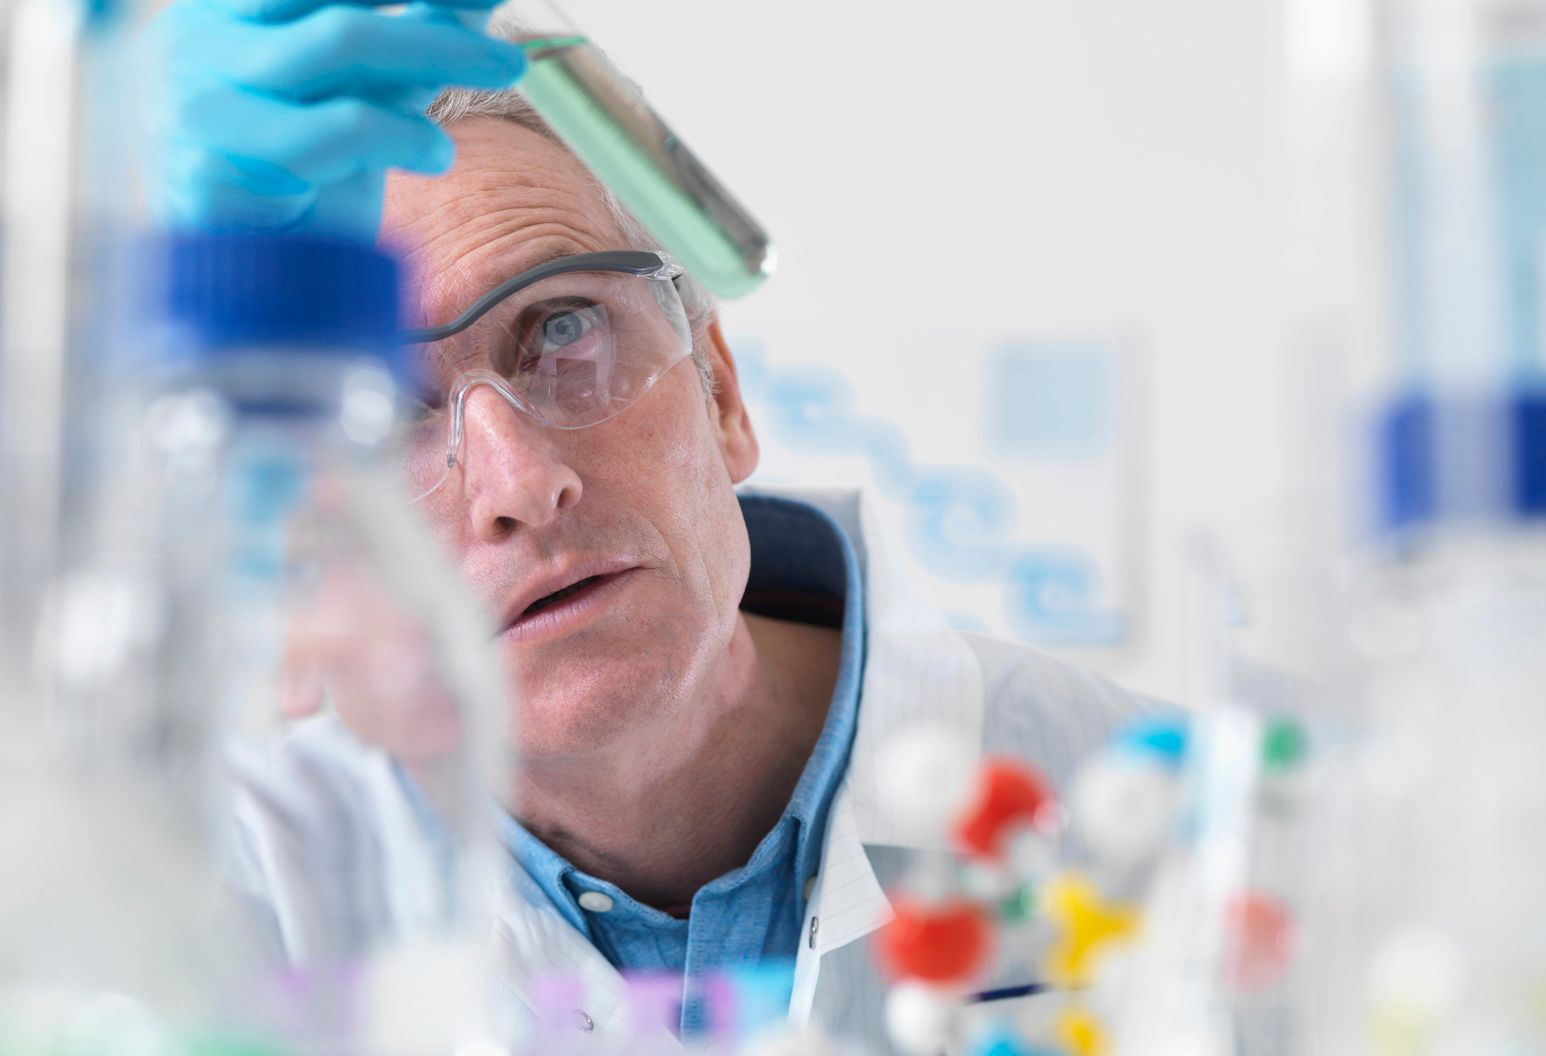 Man wearing a lab coat, gloves and safety glasses, examines a test tube.